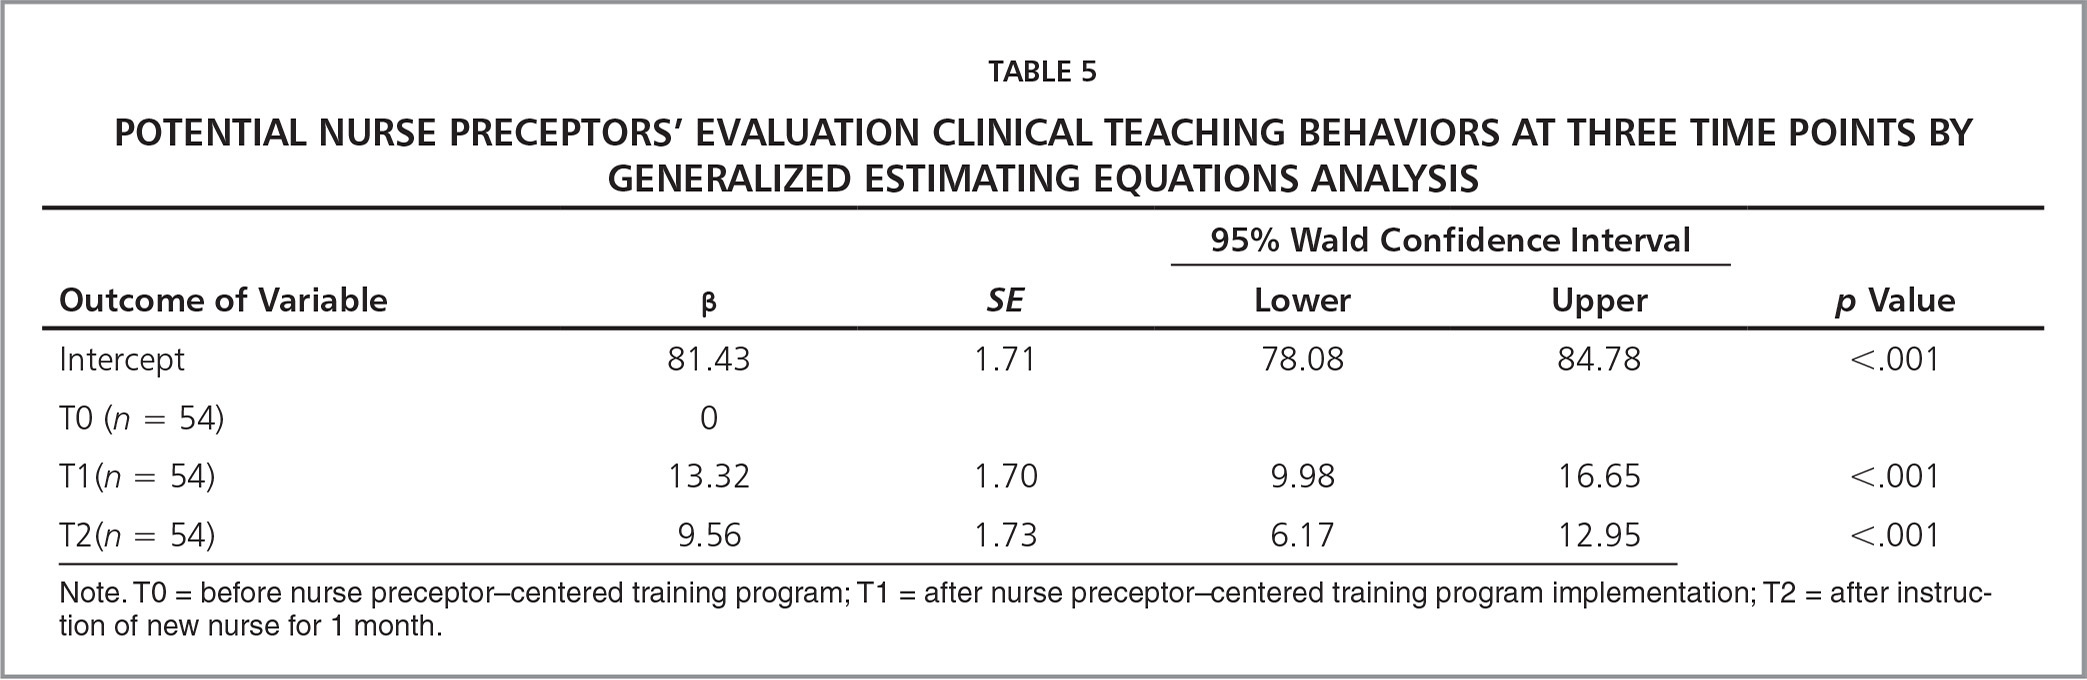 �A;Potential Nurse Preceptors' Evaluation Clinical Teaching Behaviors at Three Time Points by Generalized Estimating Equations Analysis